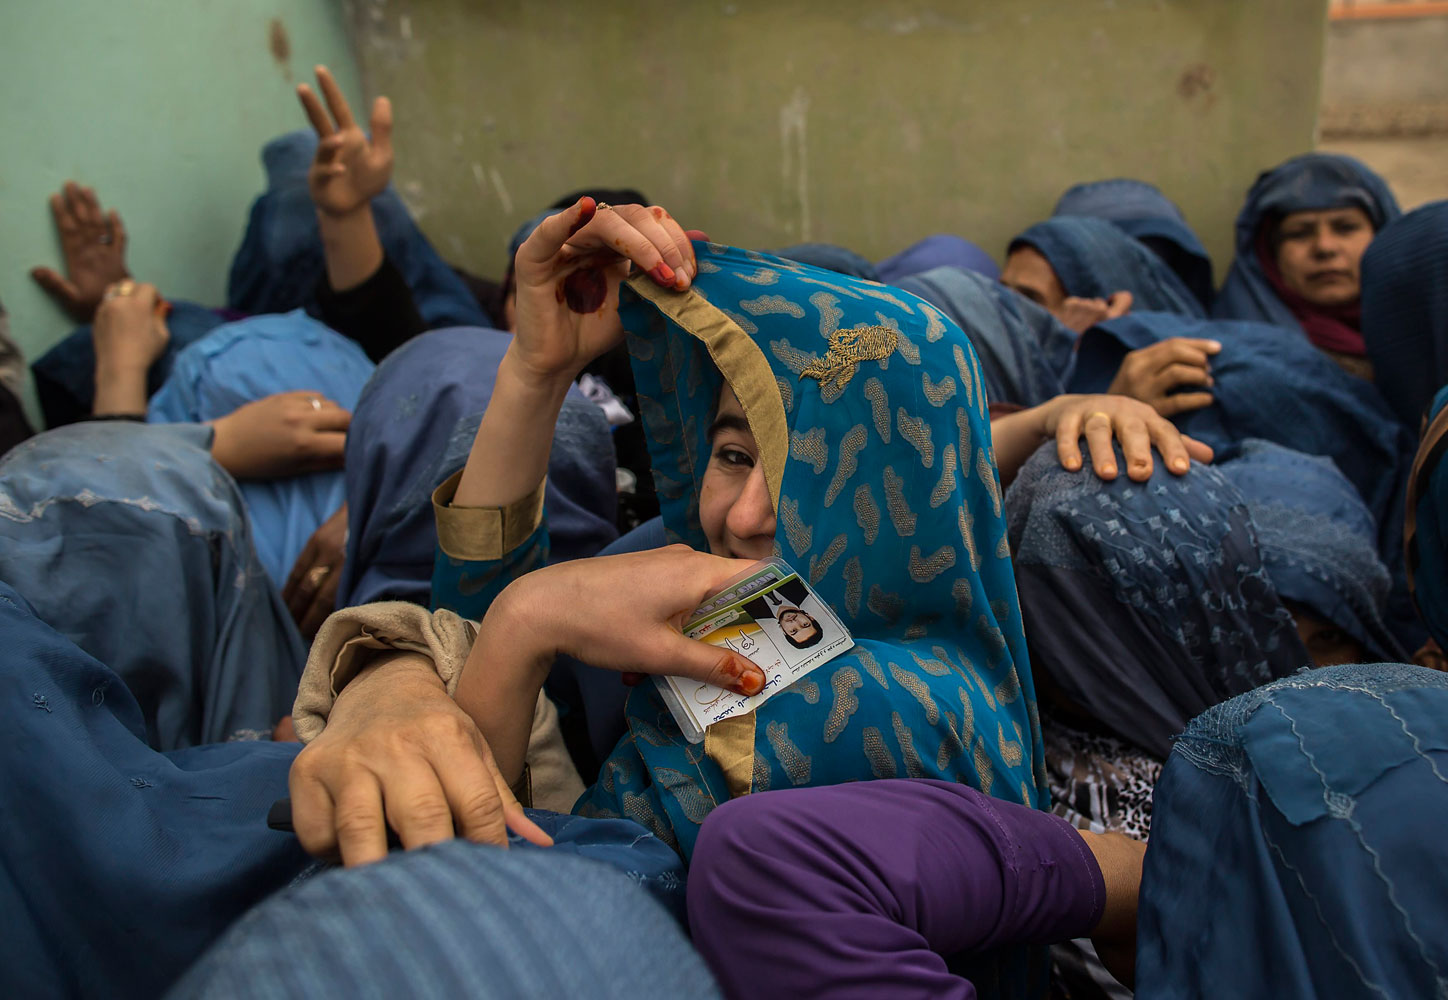 Afghan women wait to cast their ballots at a polling station in Mazar-i-sharif April 5, 2014.